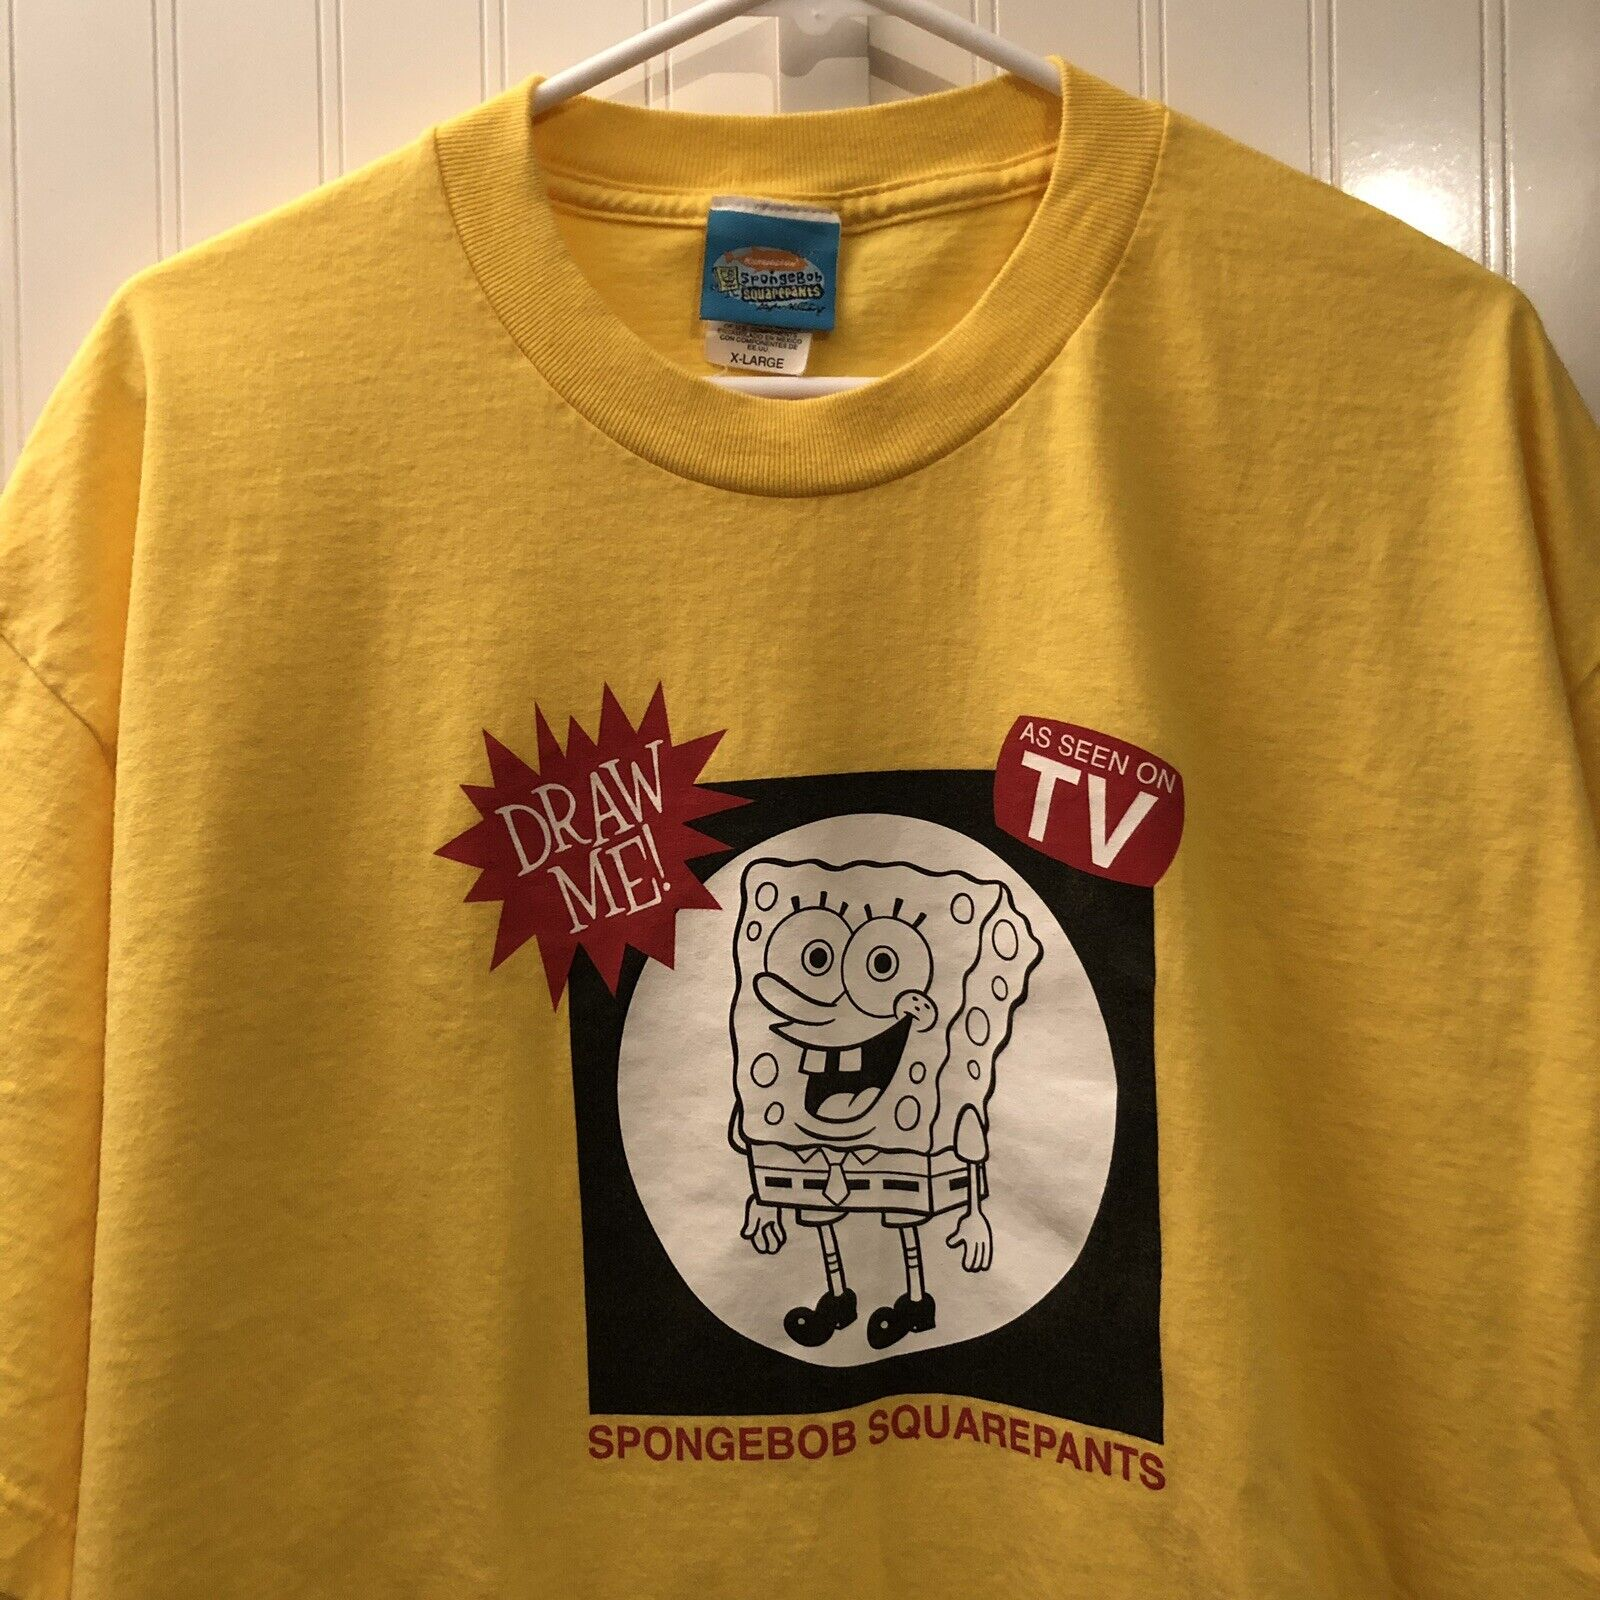 Vintage Spongebob Squarepants T Shirt XL As Seen On TV Graphic Hillenburg RARE